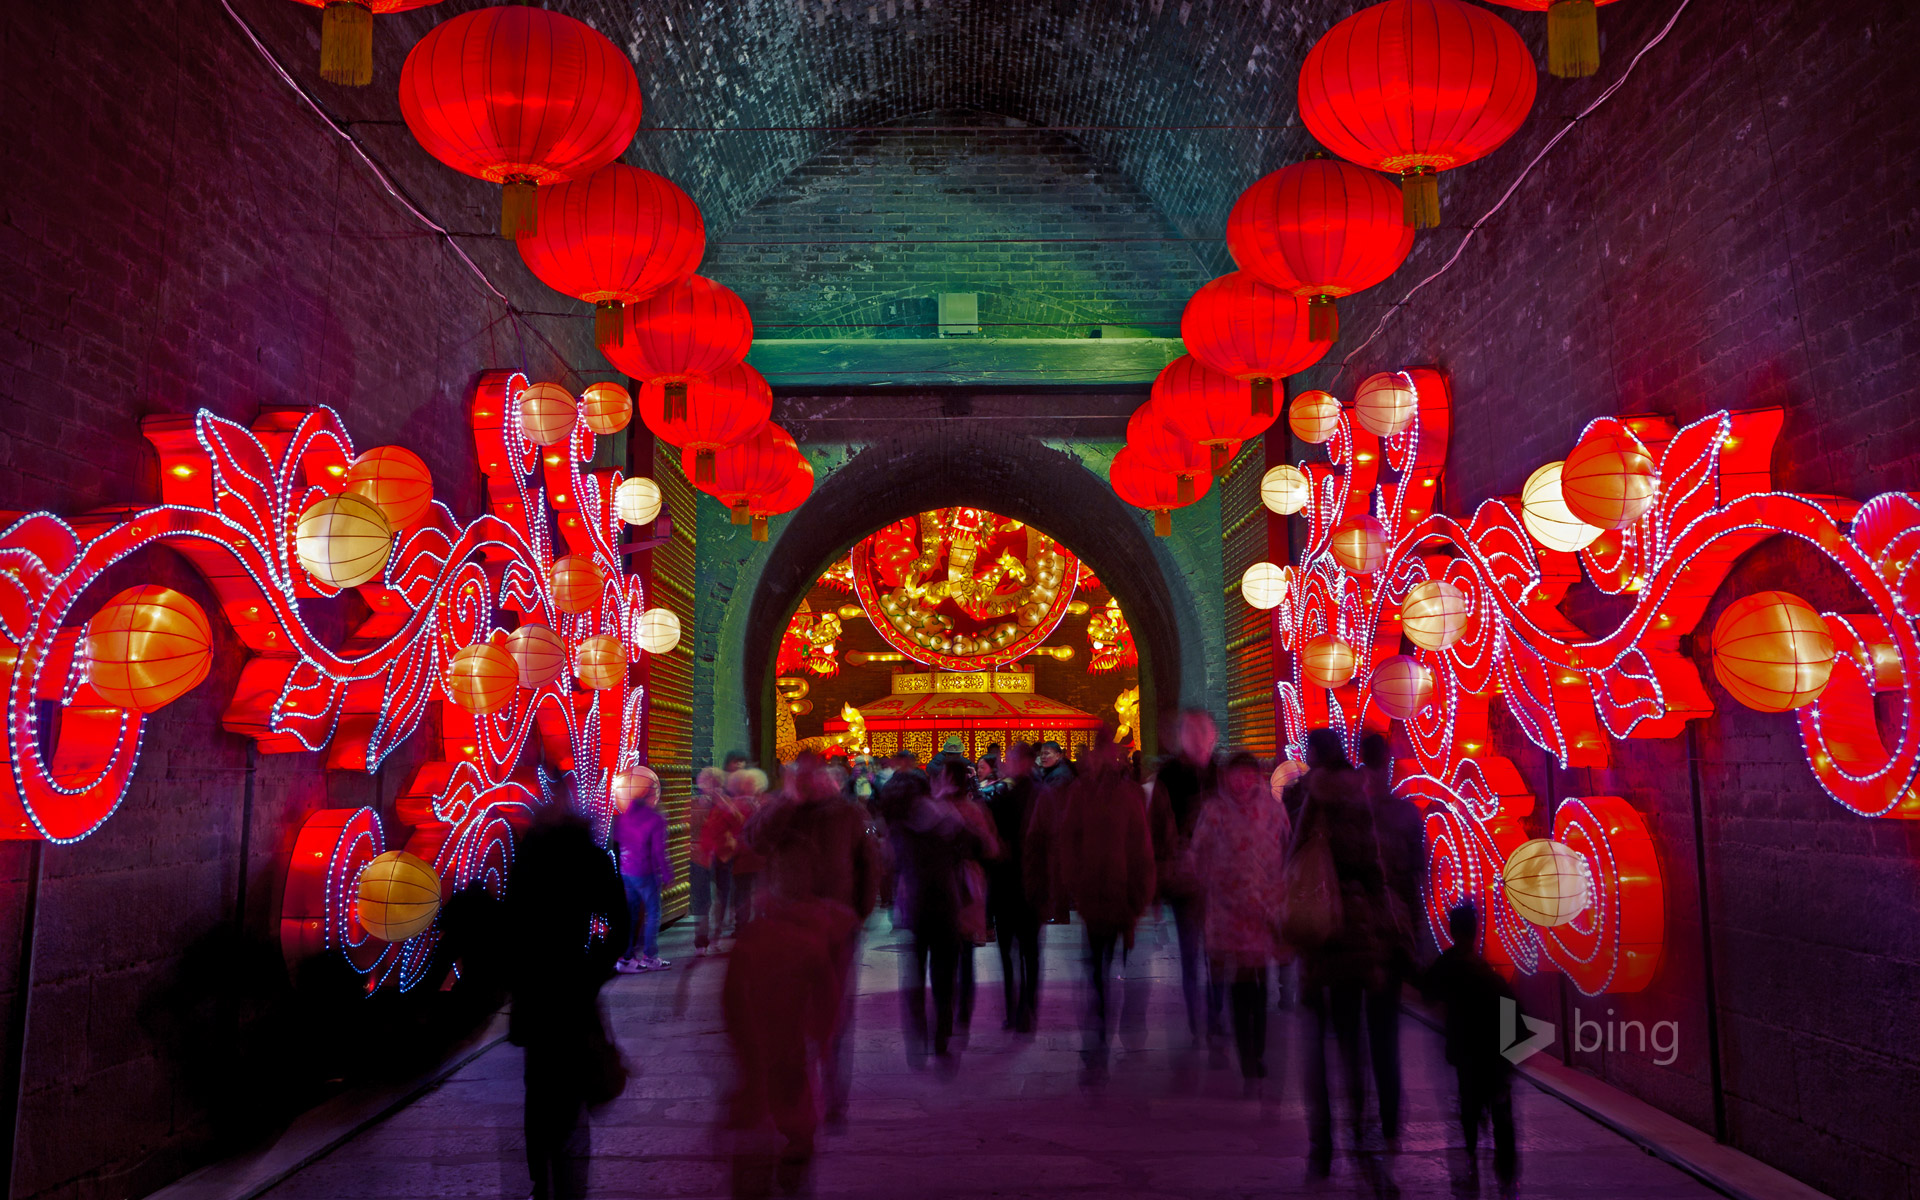 South Gate of the fortifications of Xi'an, China